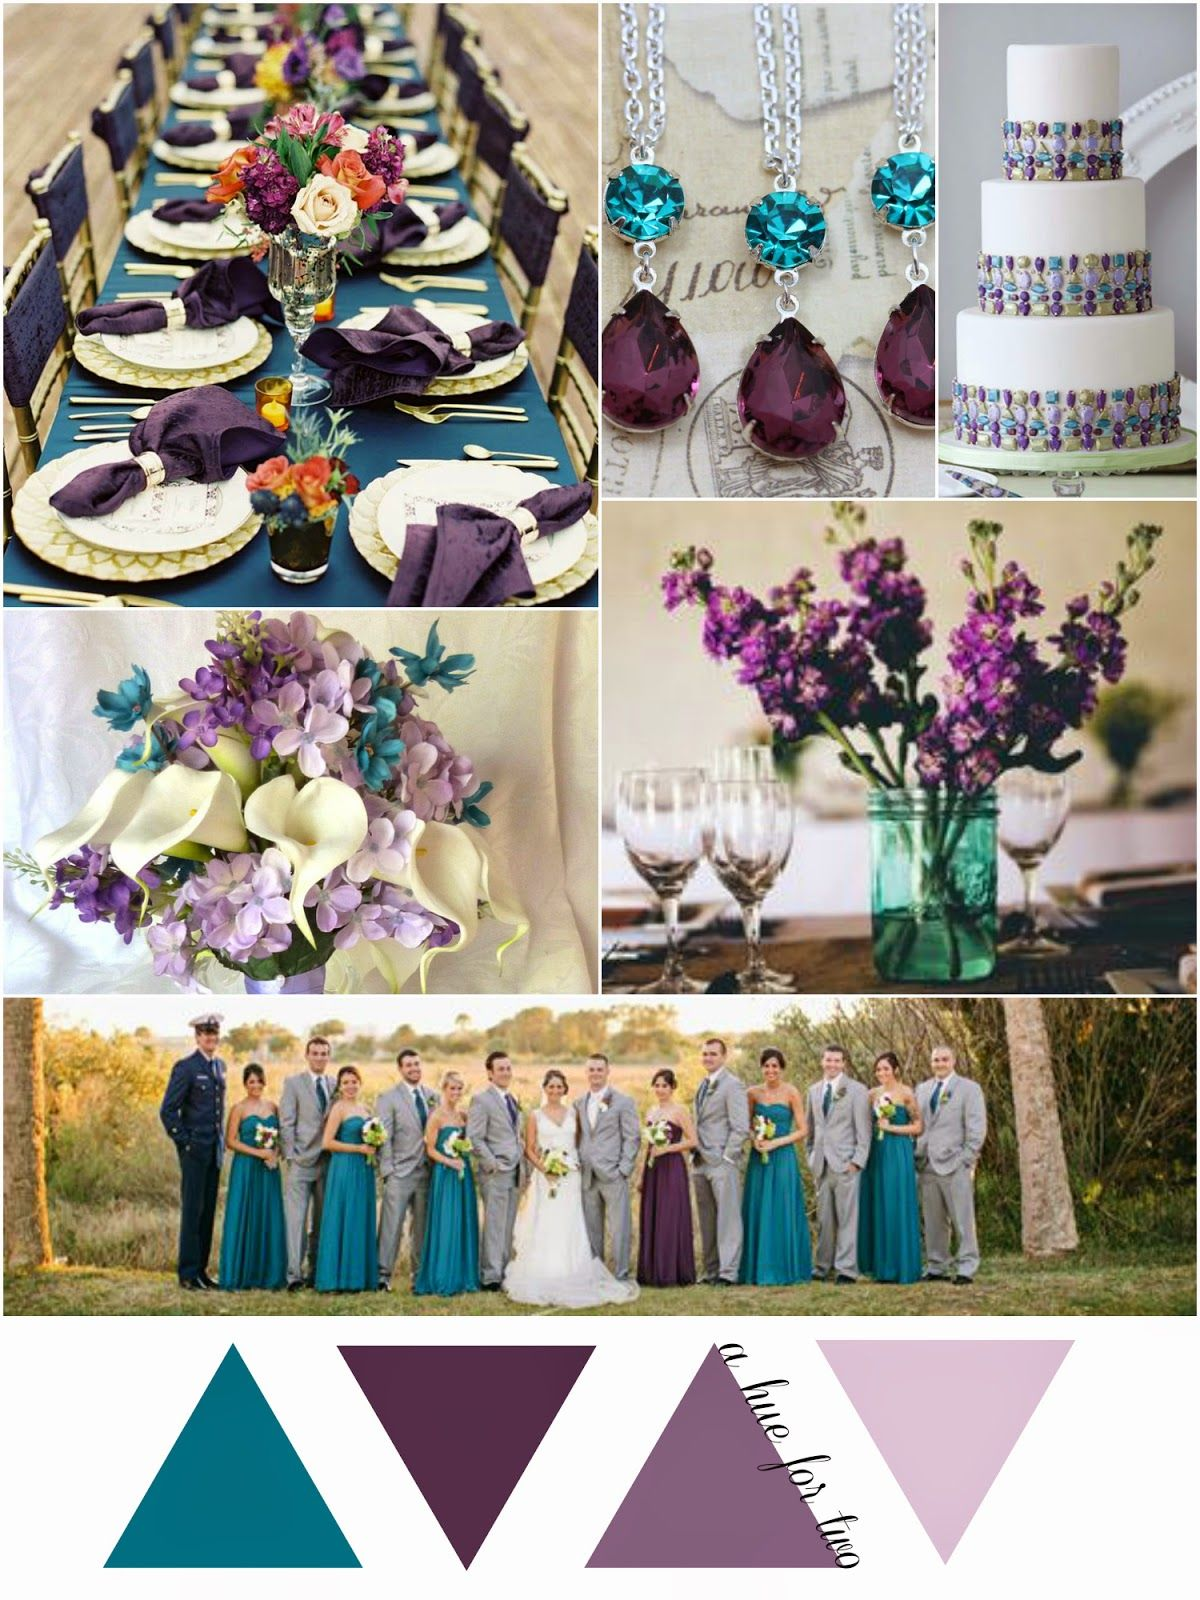 Teal Eggplant And Lavender Wedding Colors Colour Scheme A Hue For Two More